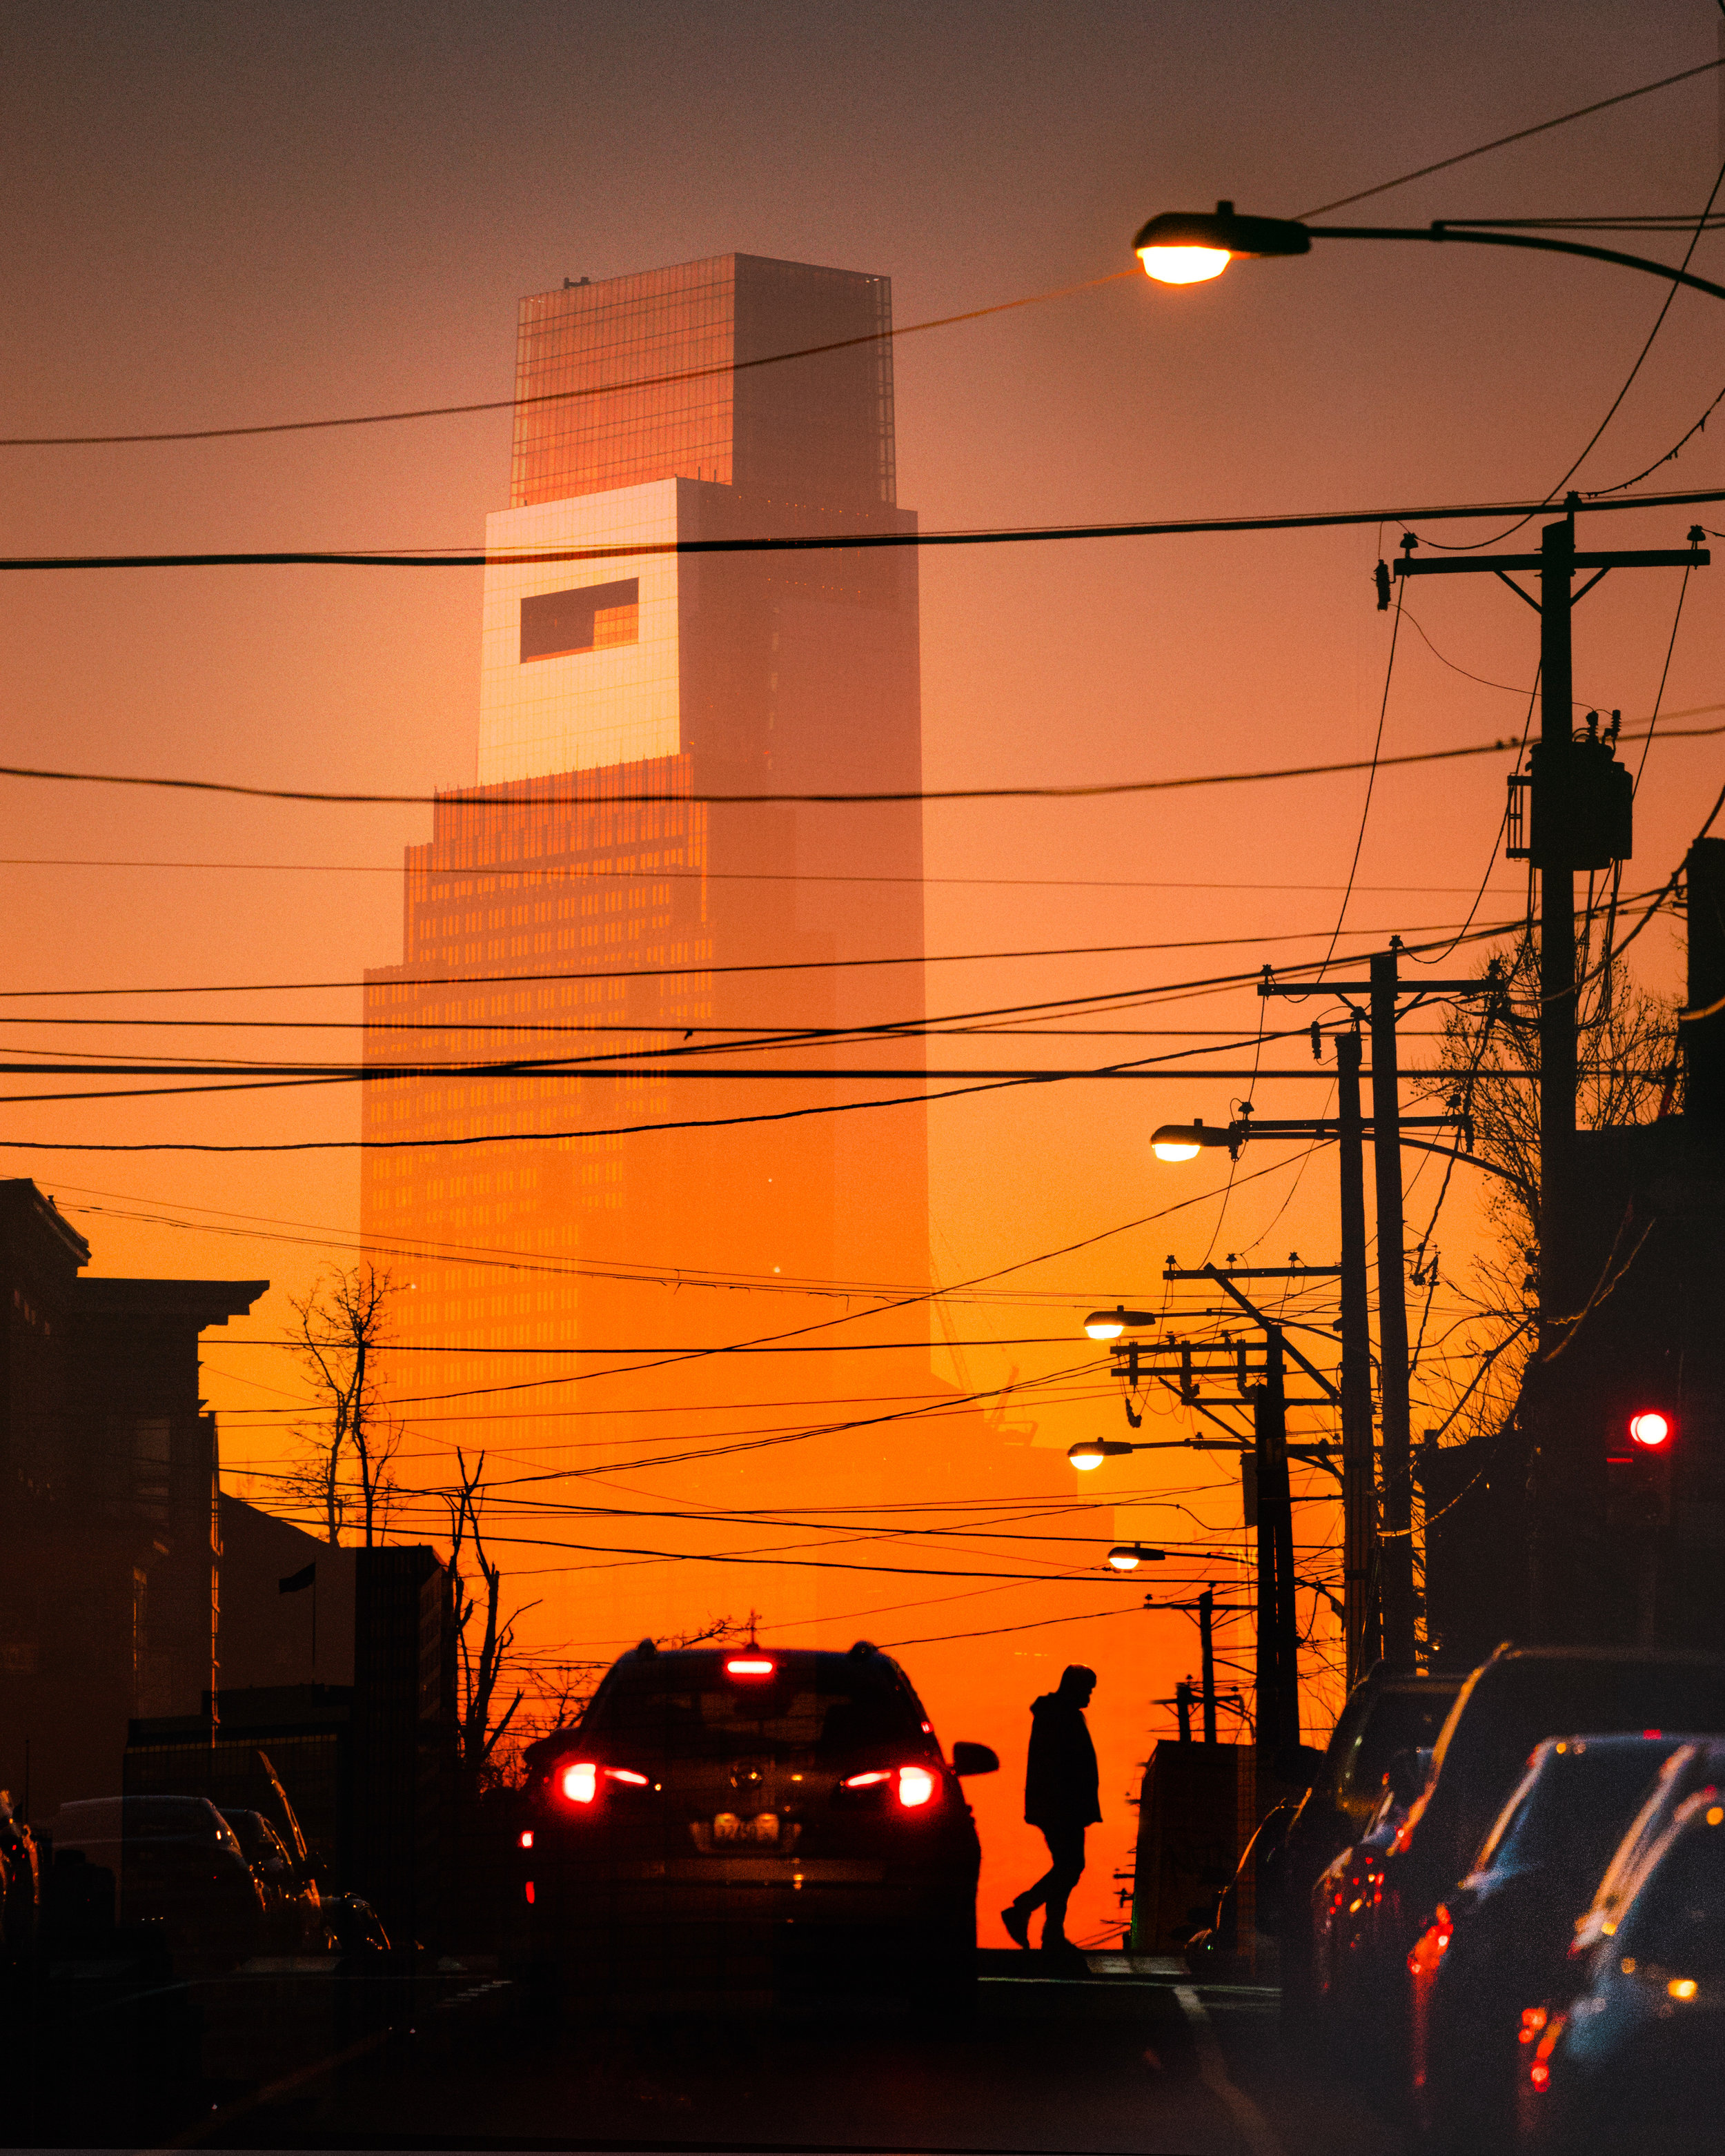 Guy Walking west philly comcast one in background sunset.jpg